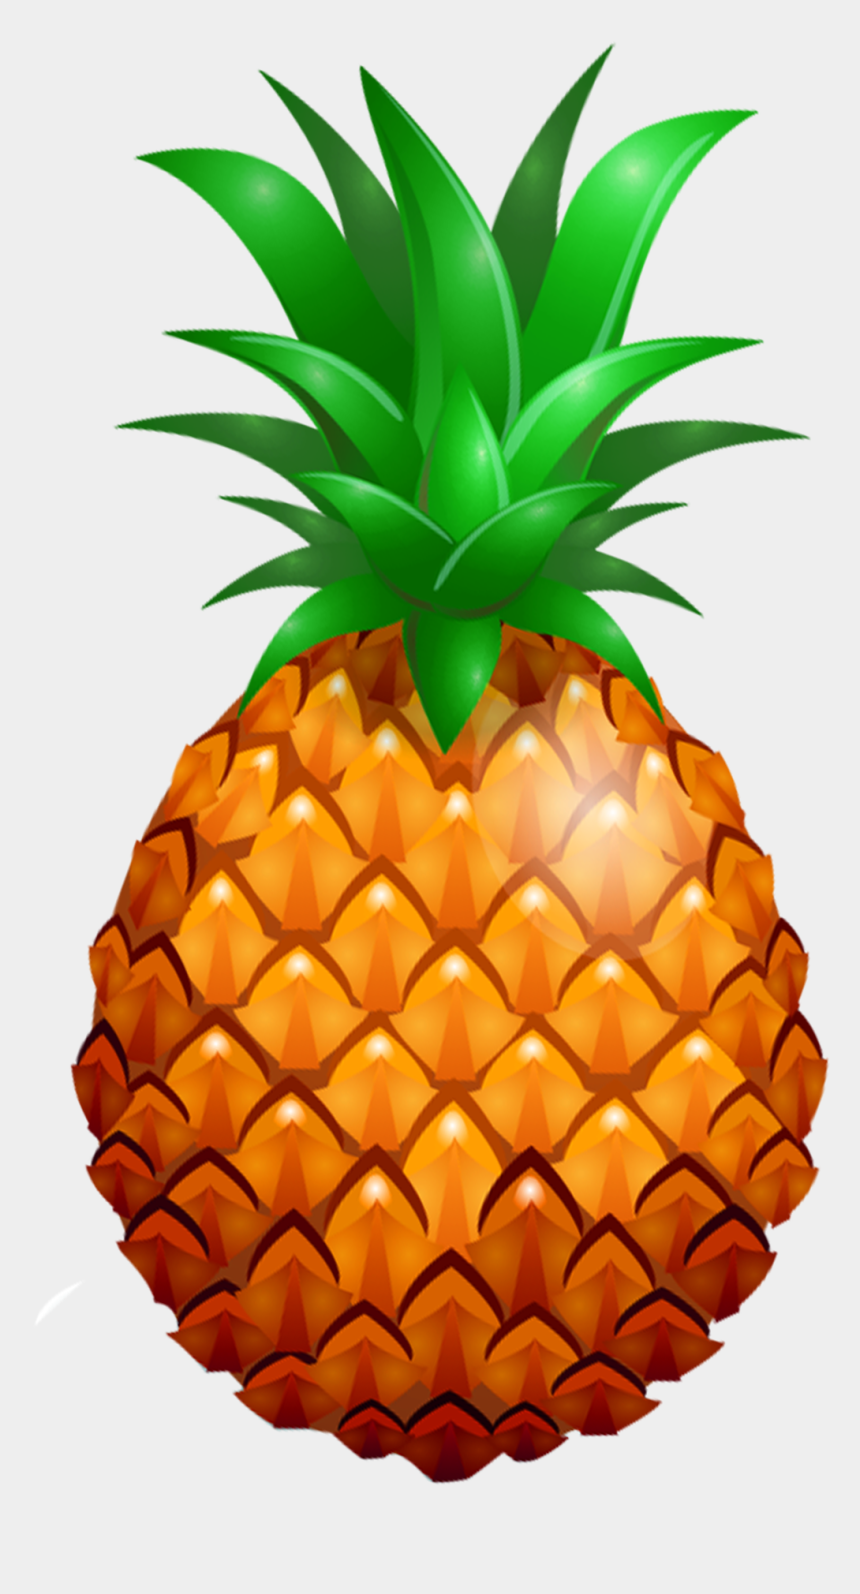 pineapple clipart, Cartoons - Pineapple Wearing Sunglasses Clipart